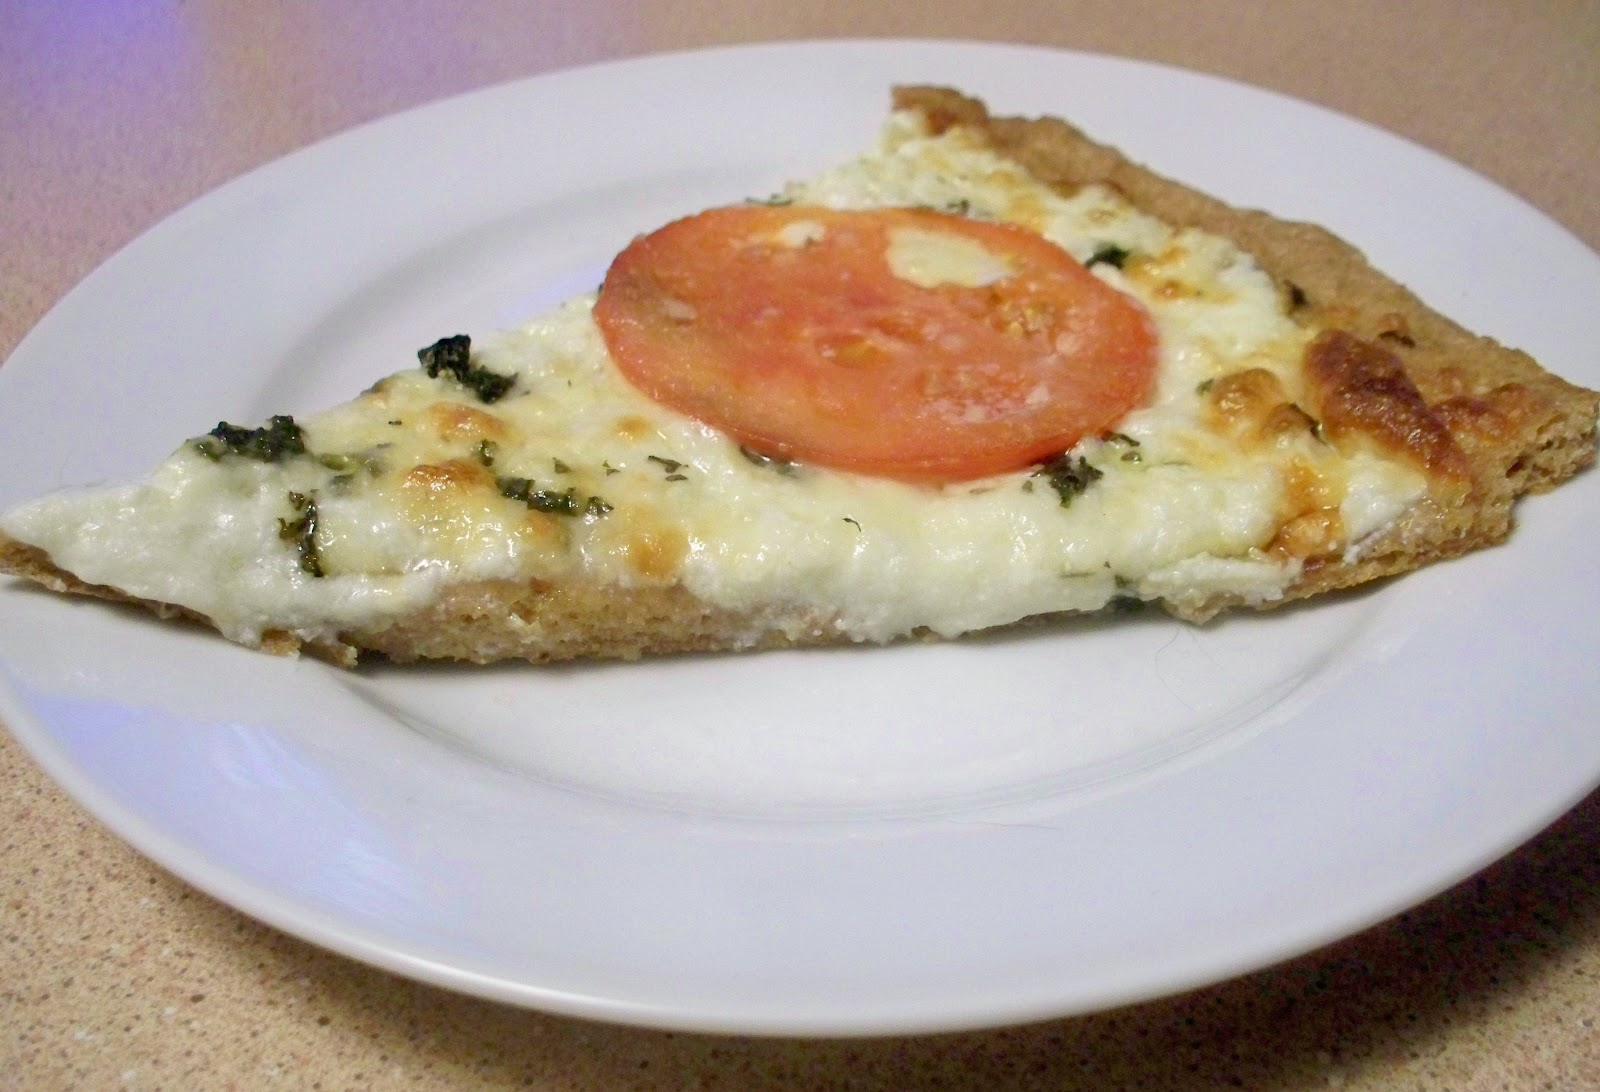 Fit and Lovin' it: White Pizza with Whole Wheat Crust